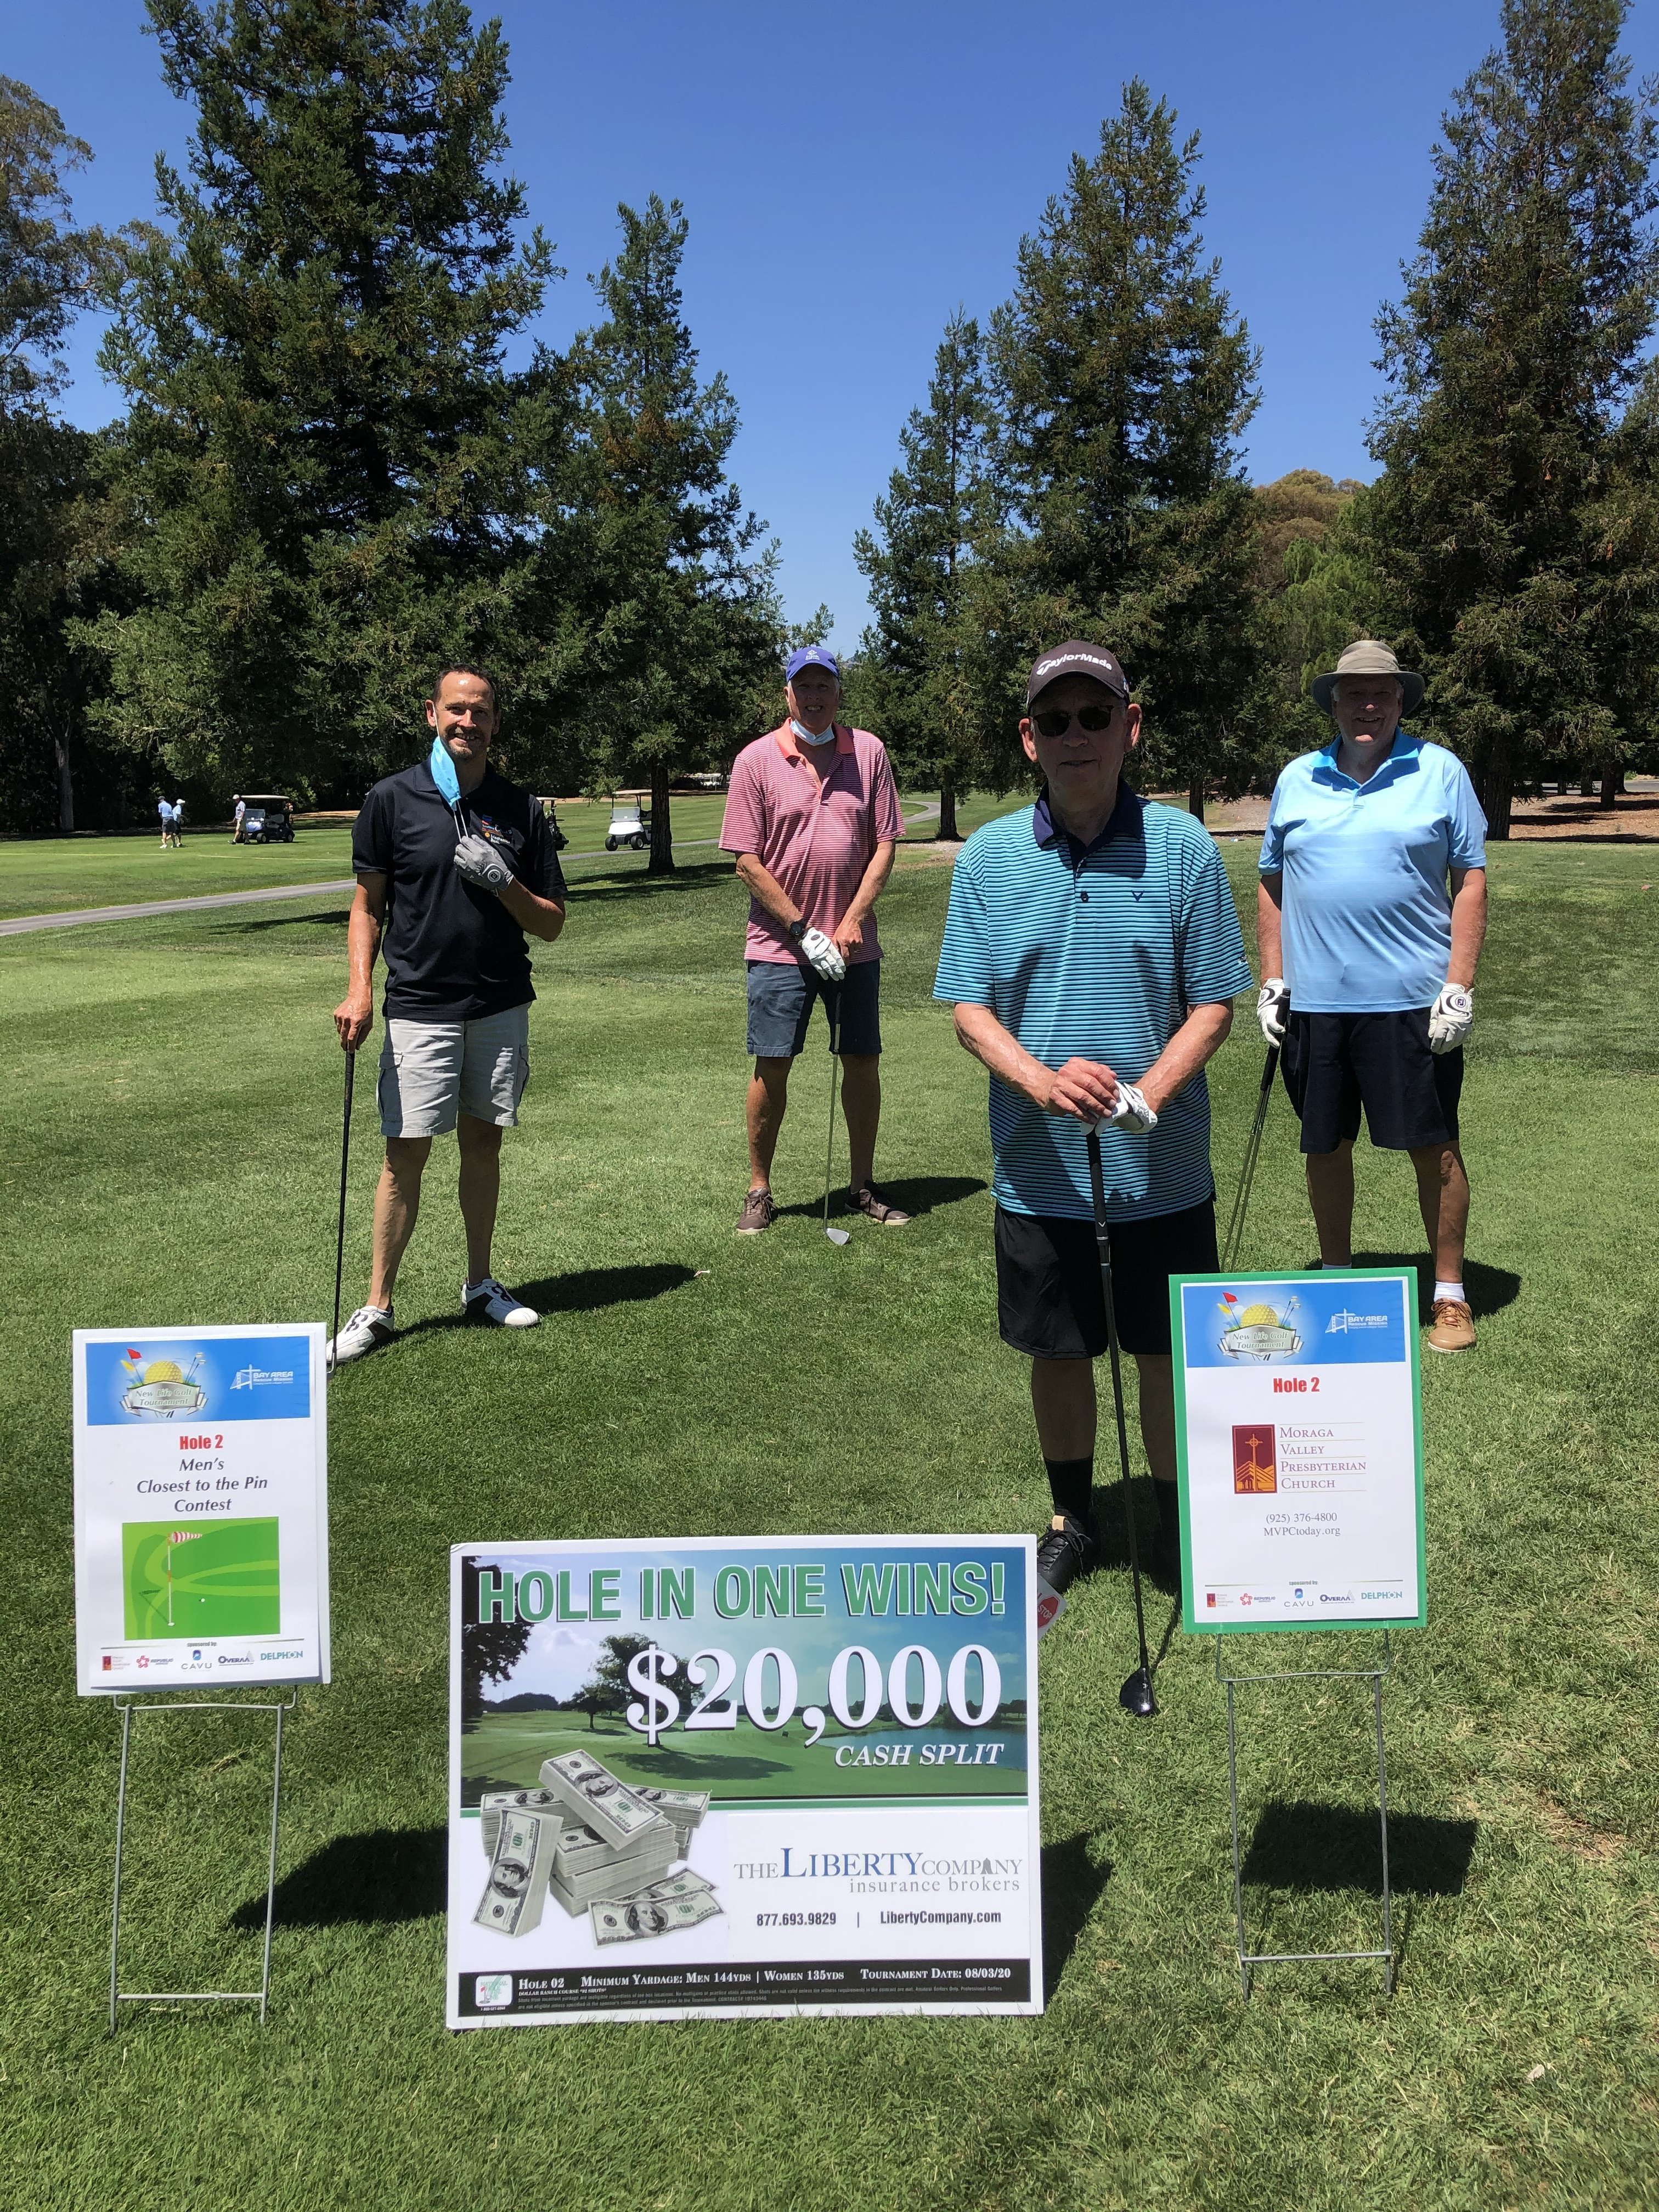 Bay Area Rescue Mission - 26th Annual New Life Golf Tournament gallery image #8